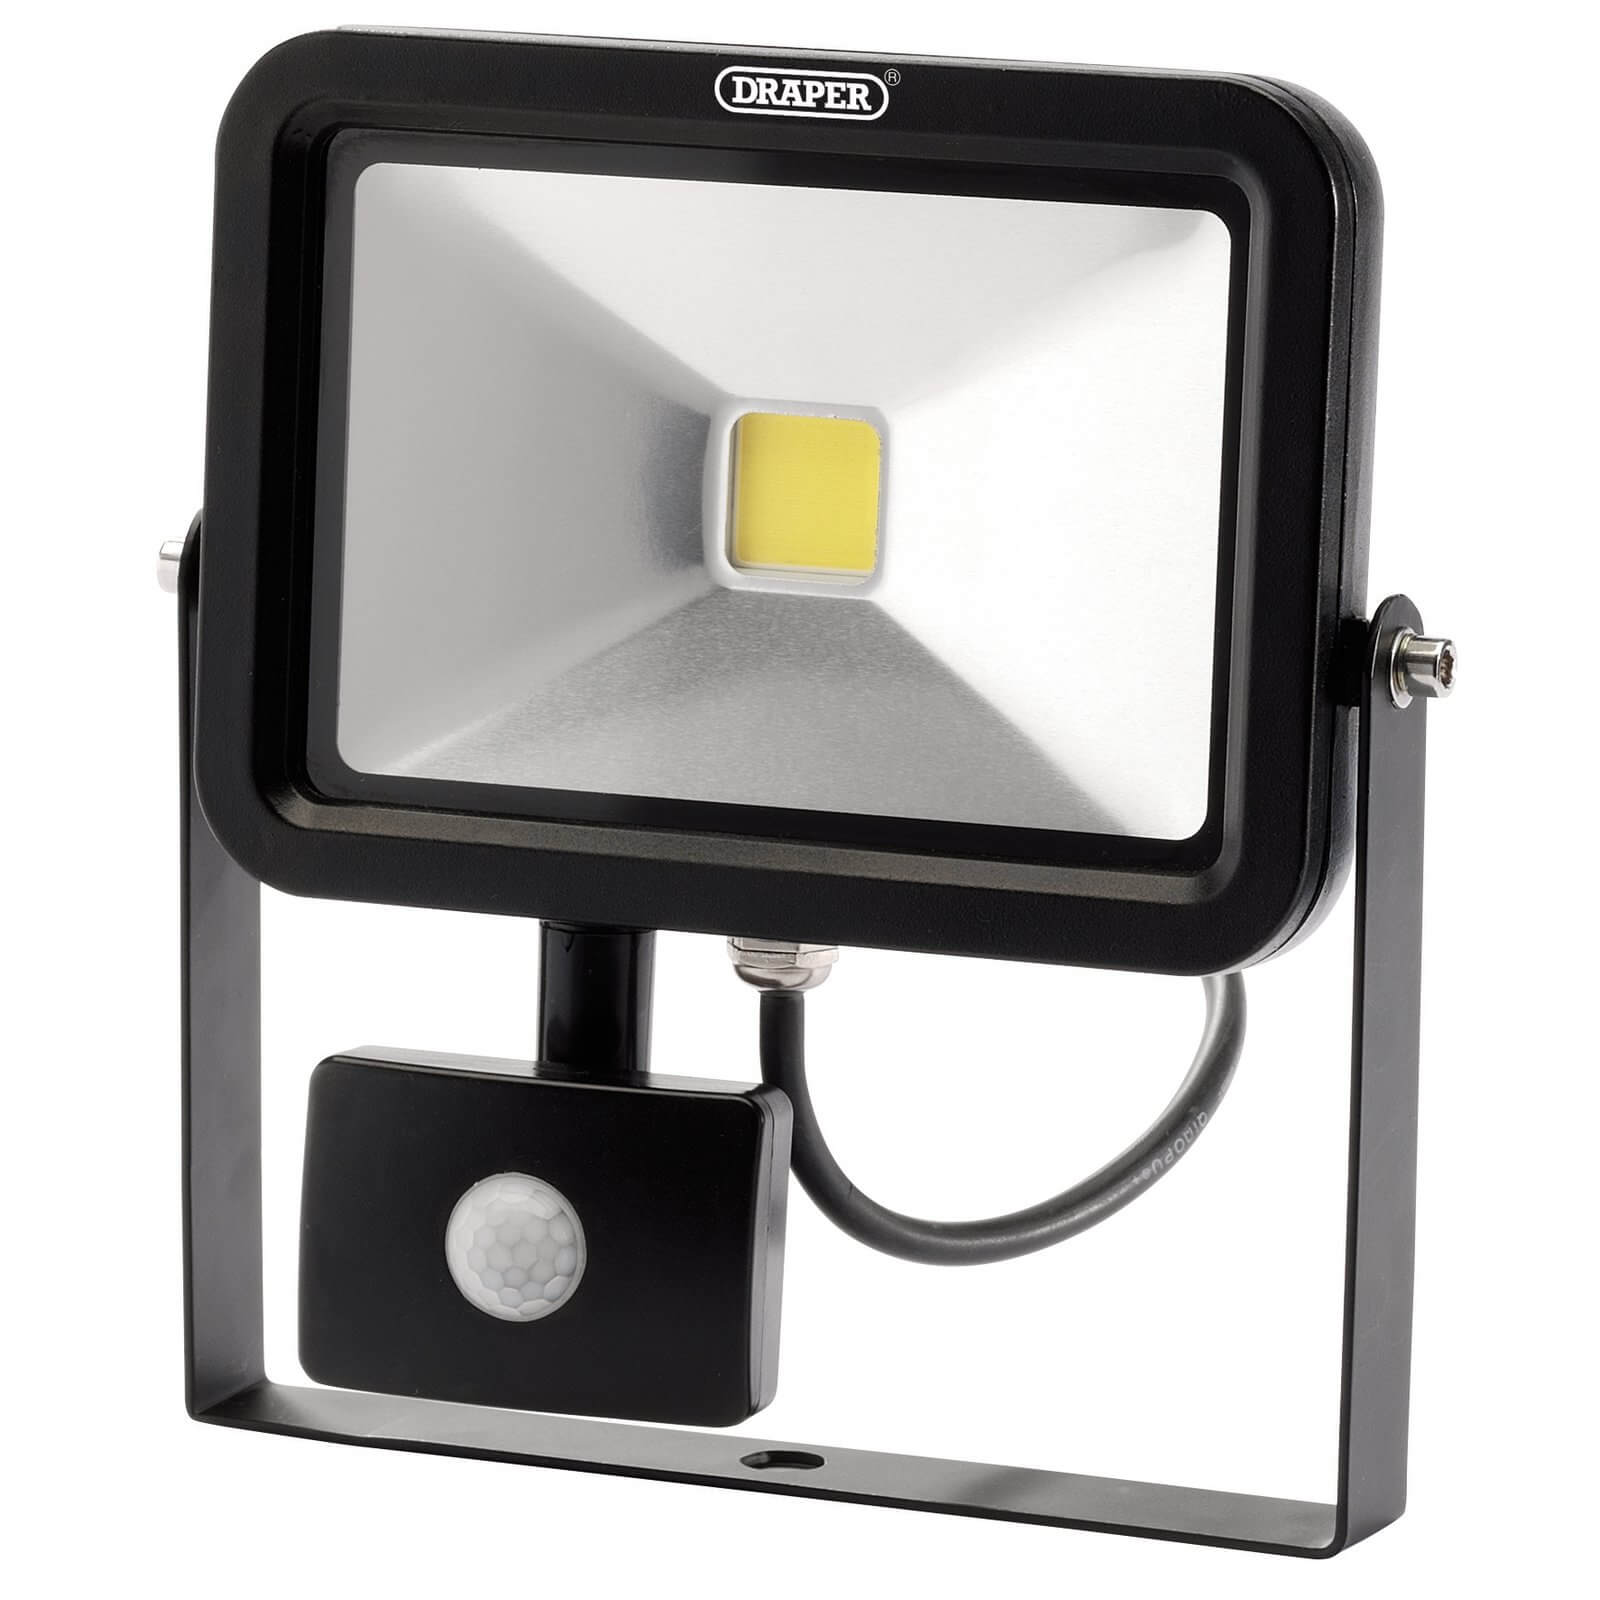 Image of Draper COB LED Slimeline Wall Mounted Floodlight With PIR 20 Watts